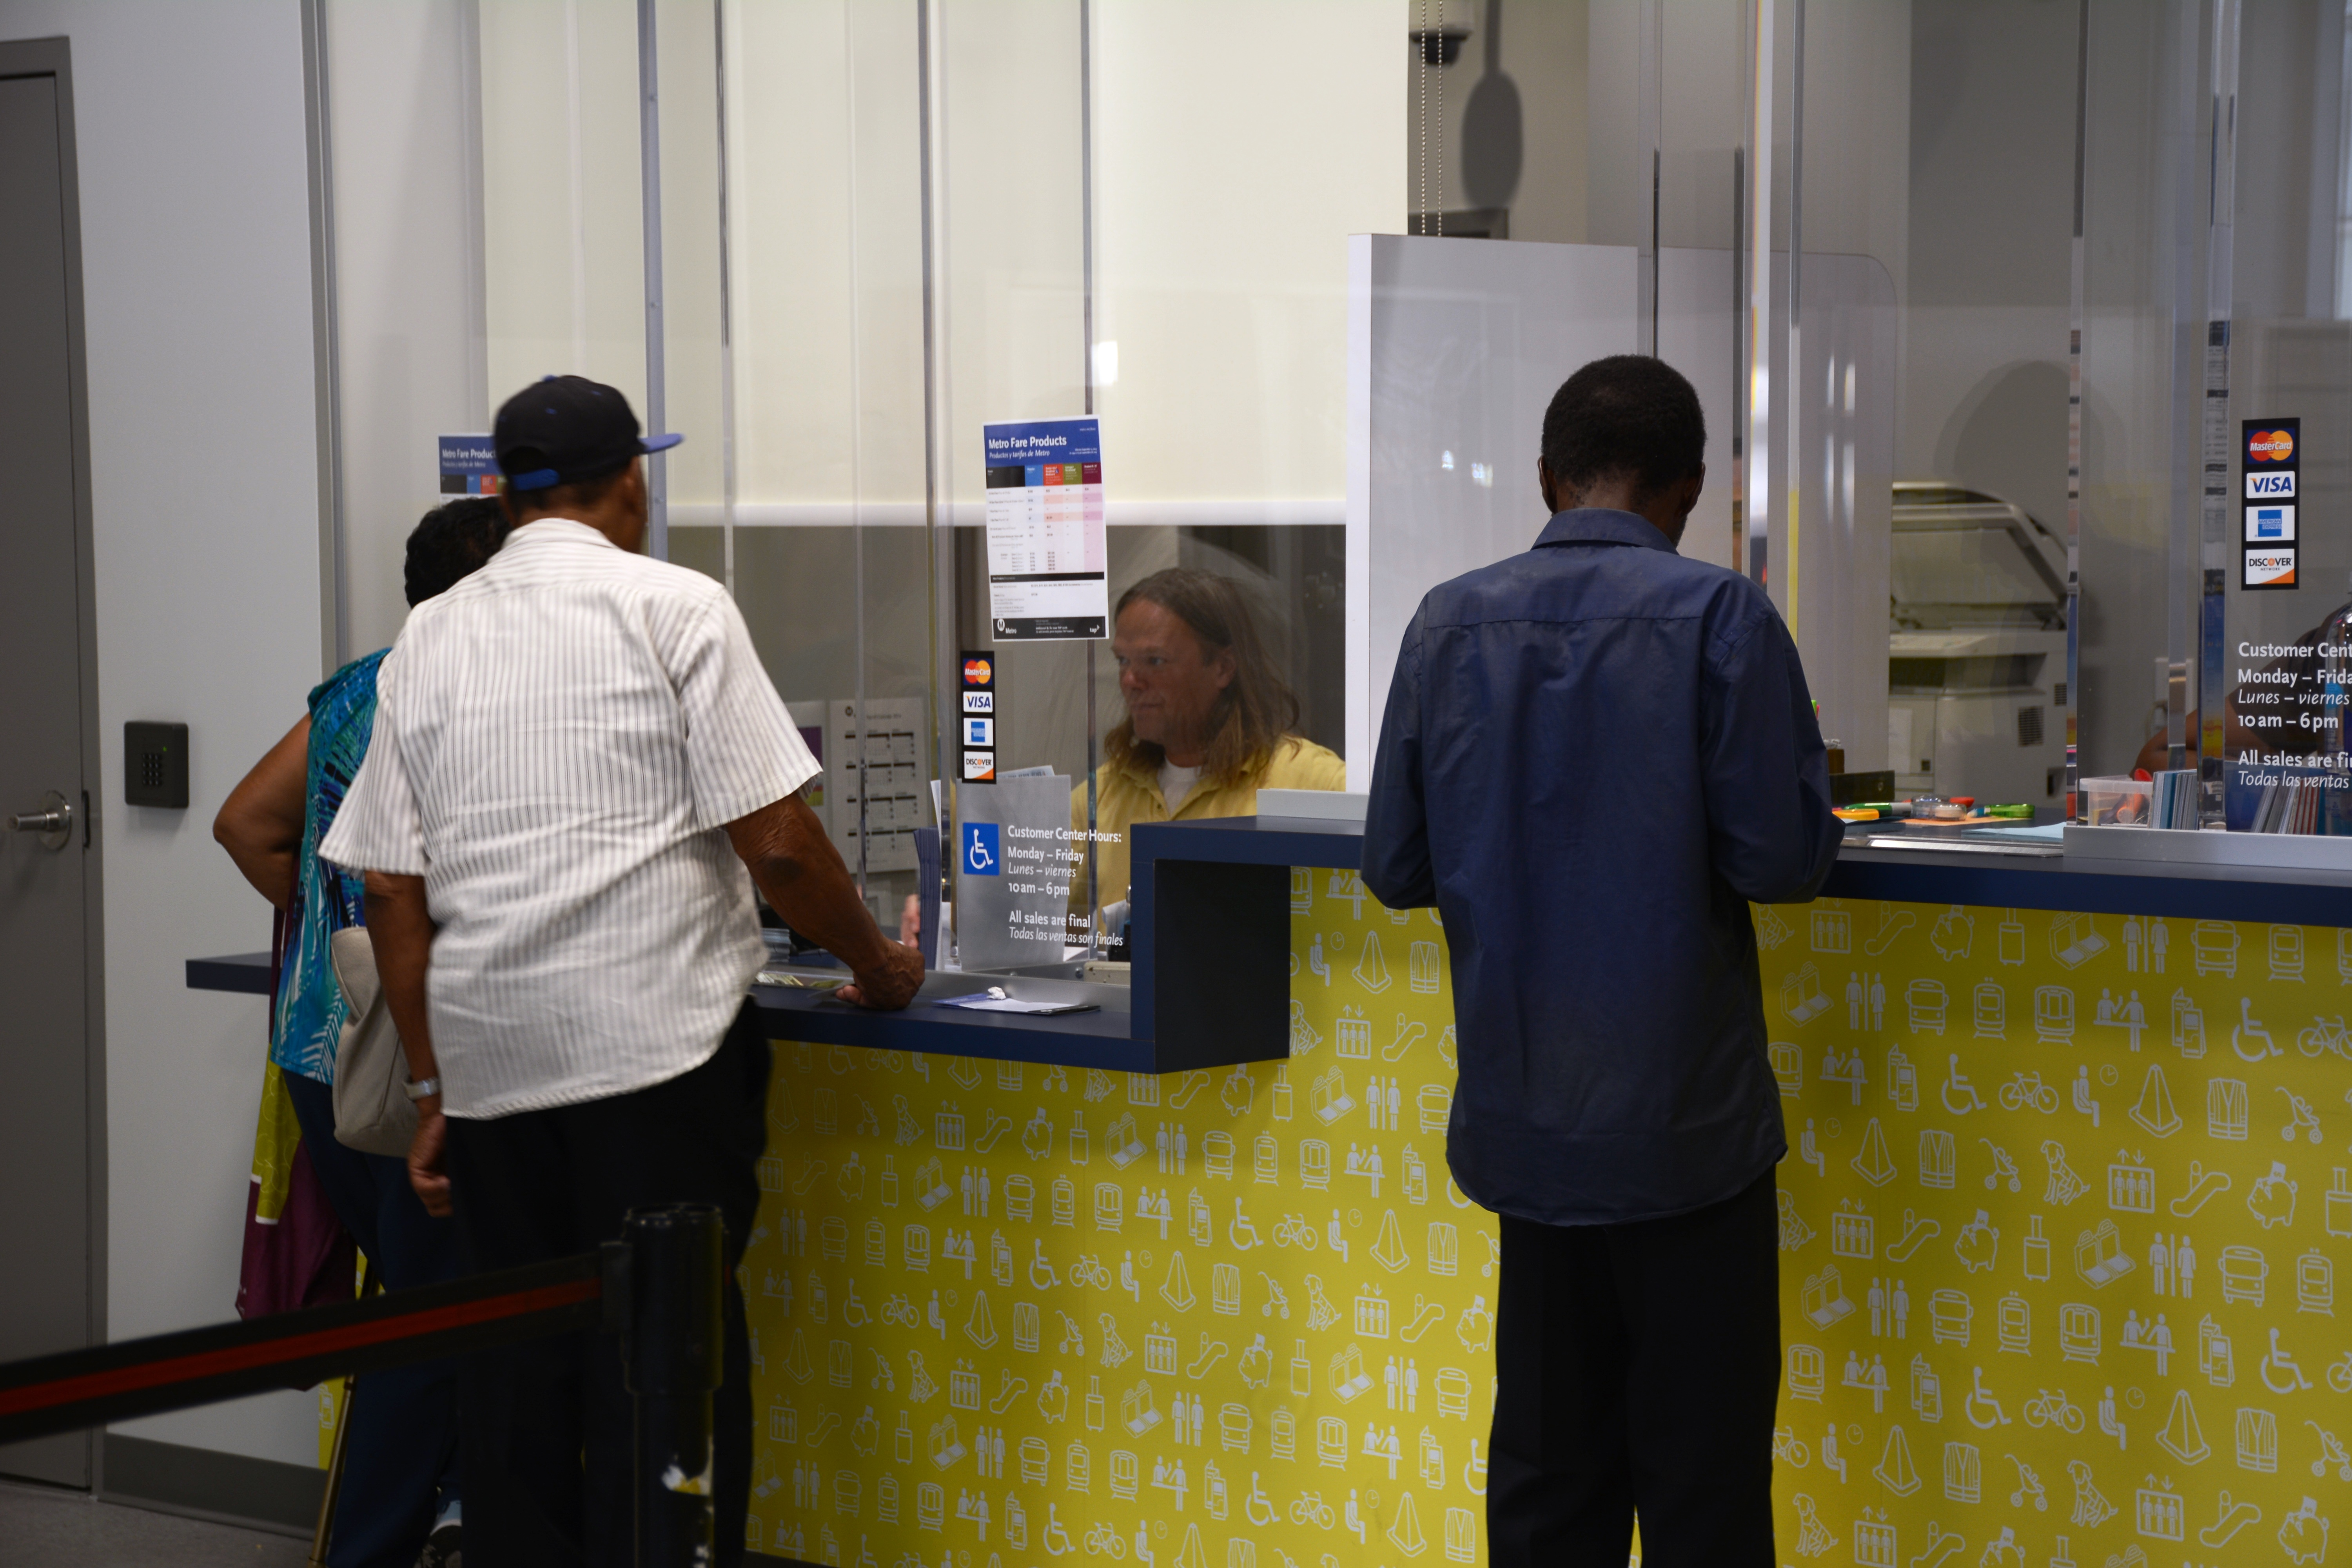 Metro Service Center >> Need Assistance Try The Metro Customer Service Center At Wilshire